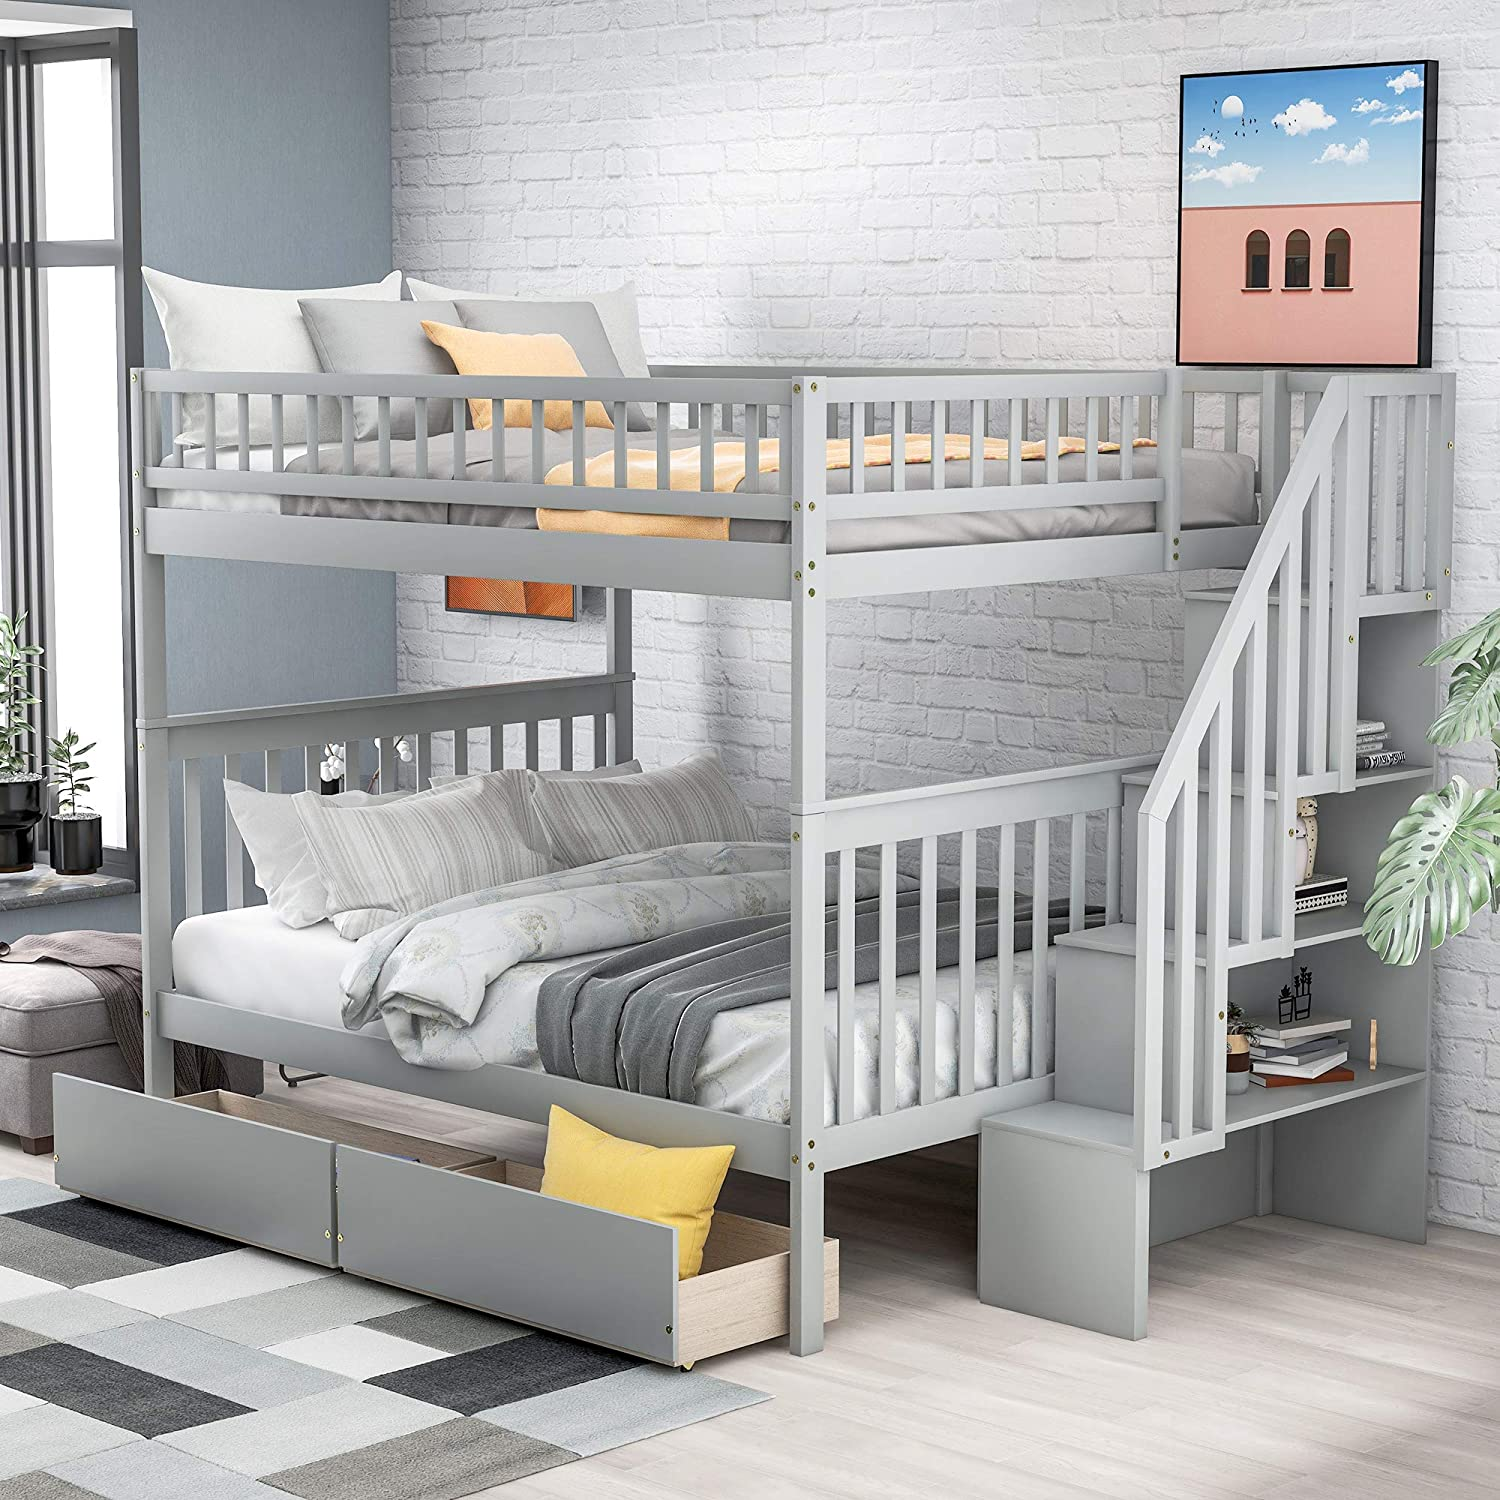 Amazon Com Lumisol Full Over Full Bunk Bed With 2 Drawers And Storage Space Saving Design Bedroom Furniture With Staircass No Box Spring Needed Grey Kitchen Dining